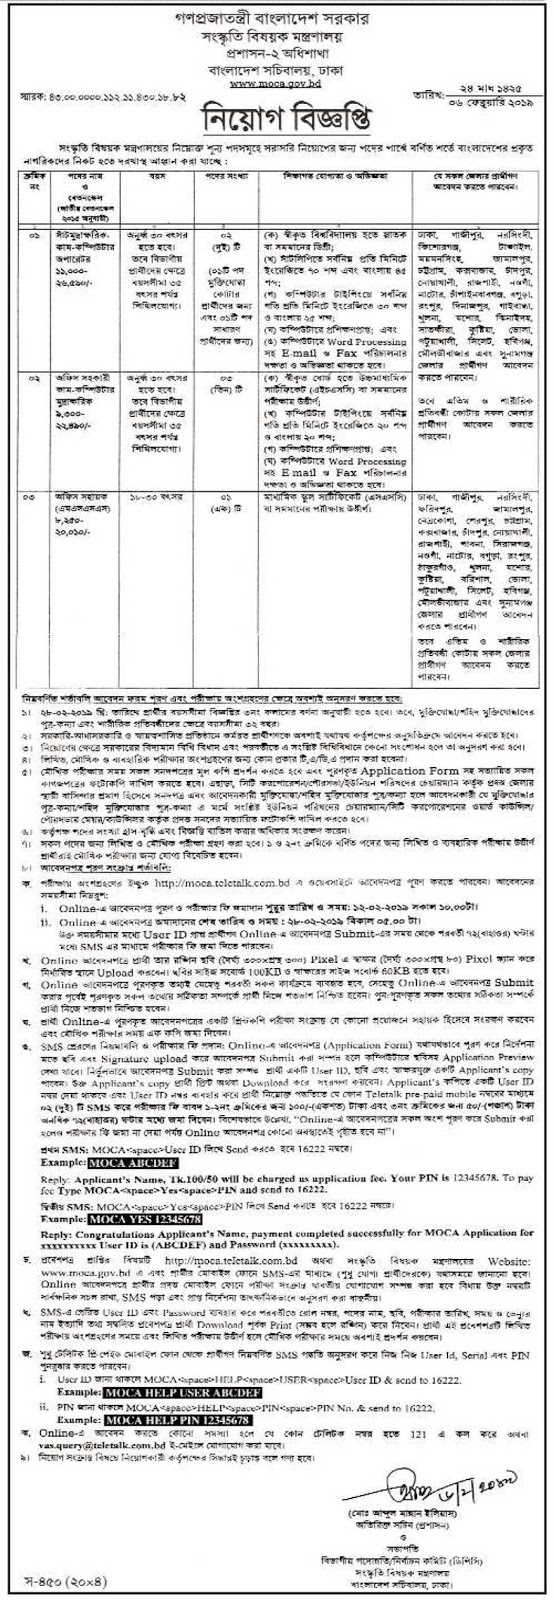 Ministry of Cultural Affairs (MOCA) Job Circular 2019